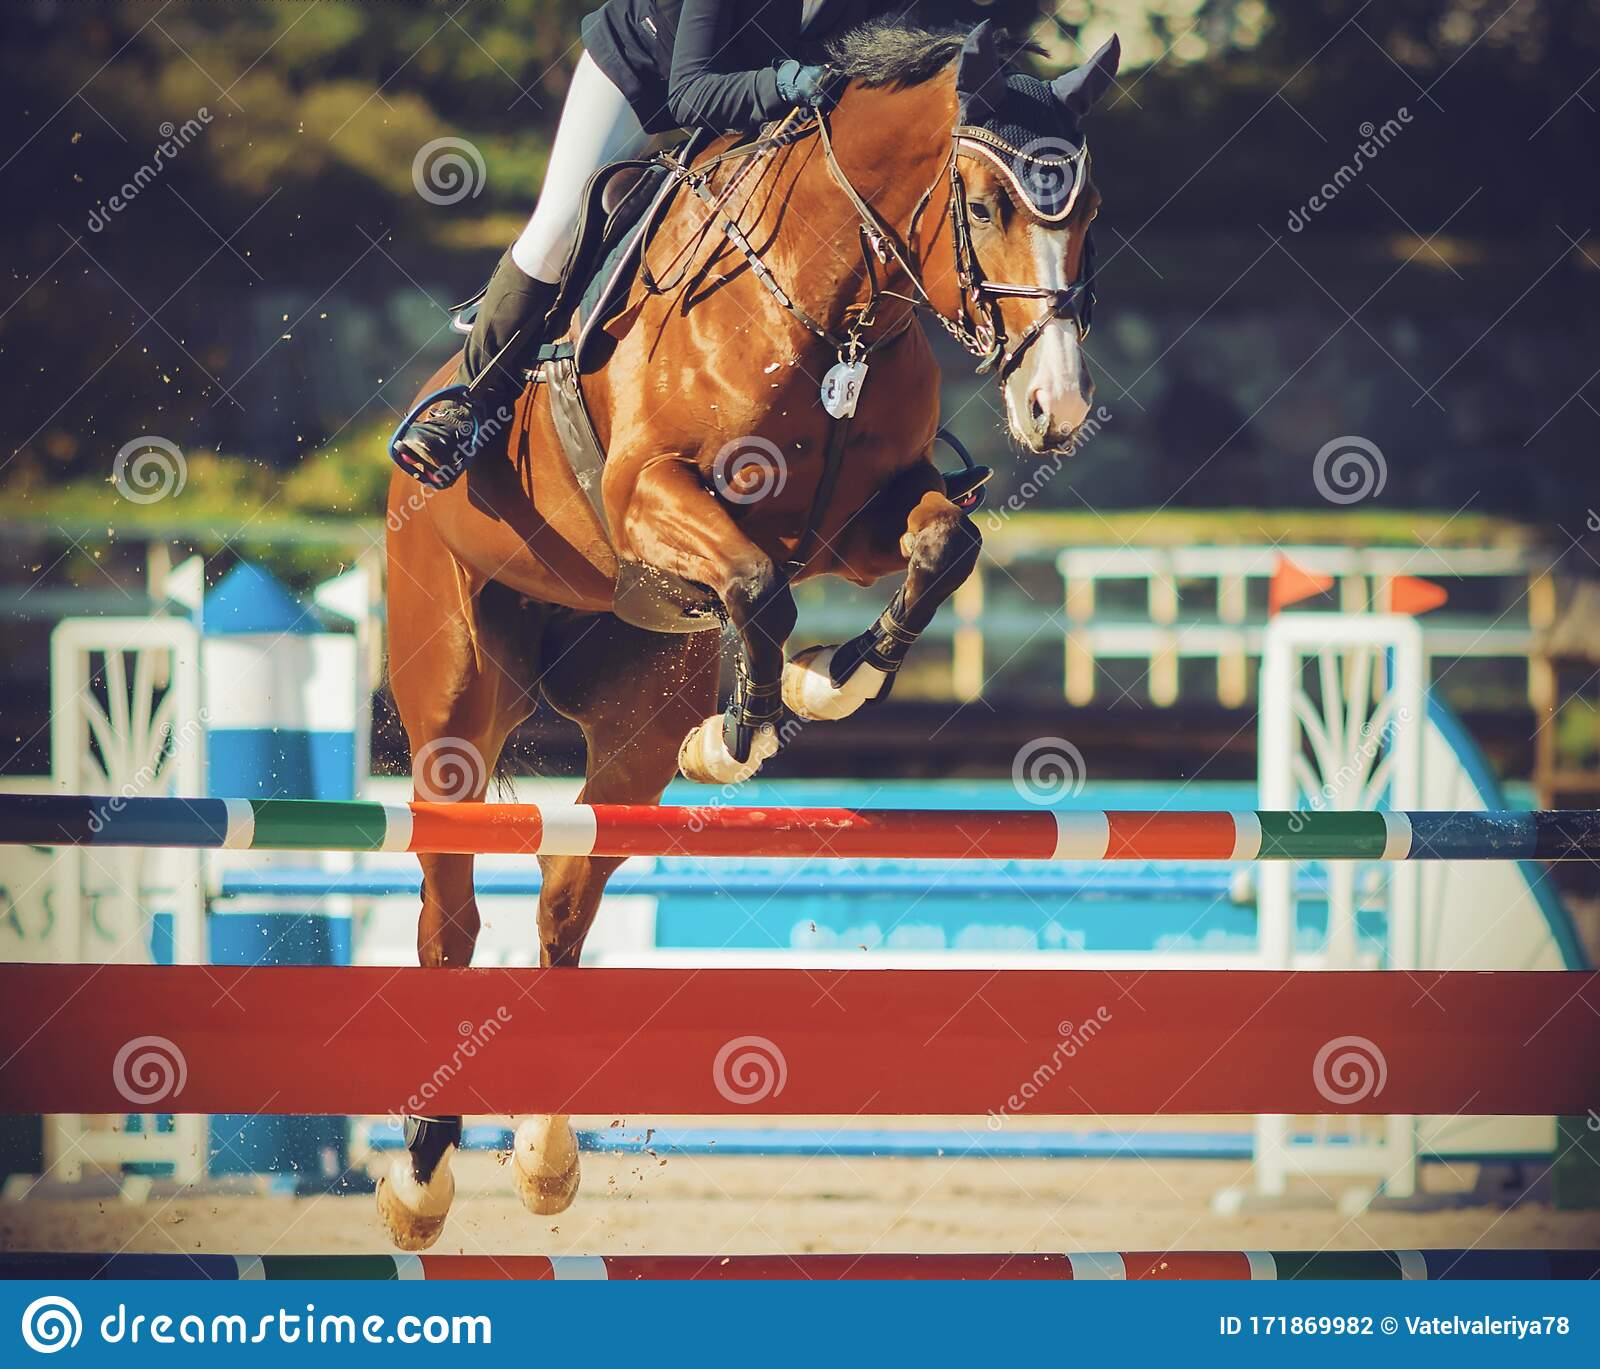 A Bay Racehorse Jumps Over A High Barrier Participating In Show Jumping Competitions On A Sunny Summer Day Stock Photo Image Of Animal Competition 171869982